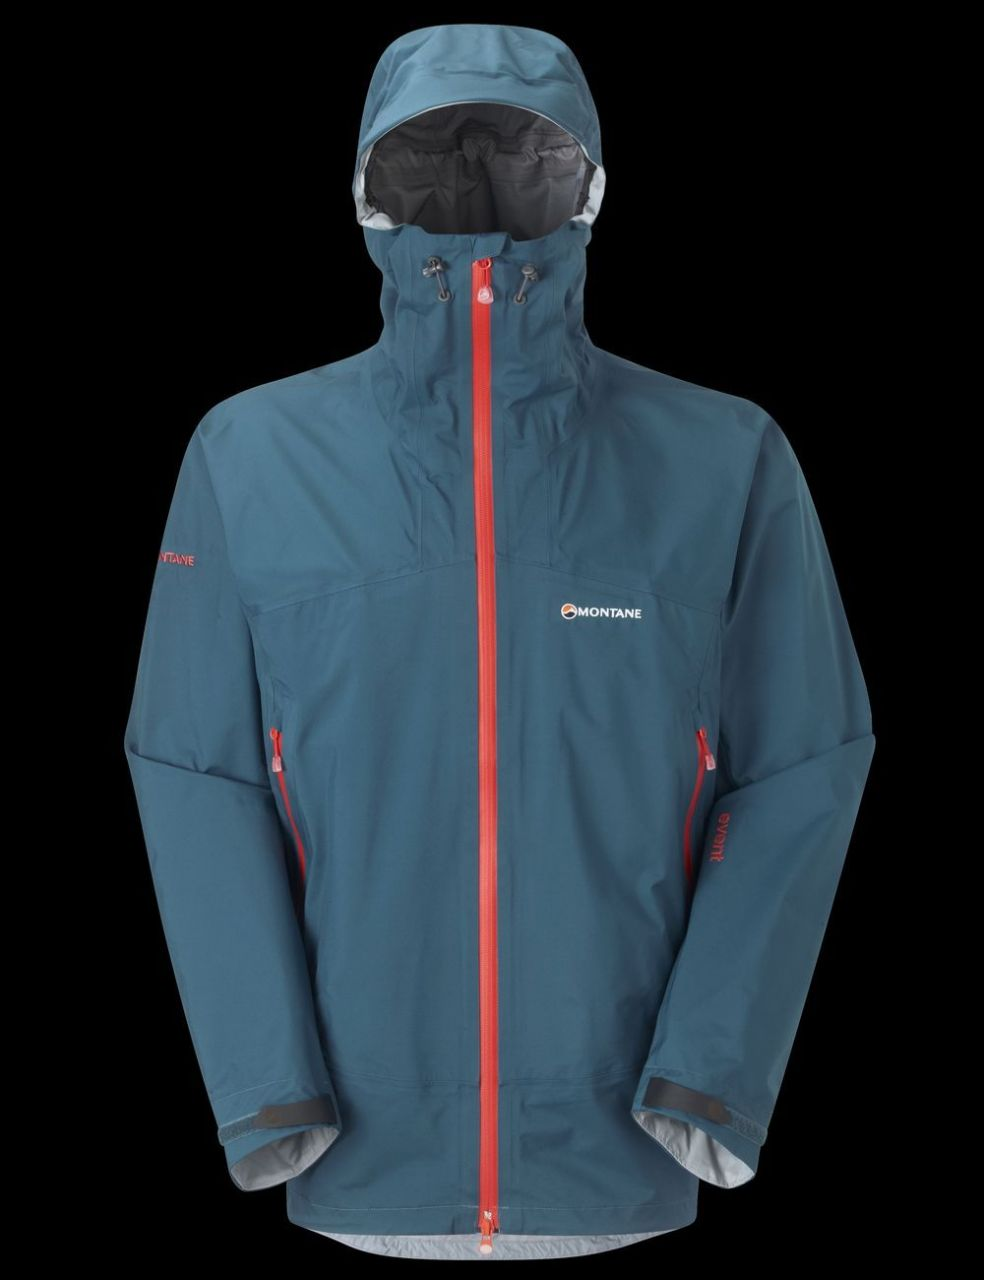 Montane Montane DIRECT ASCENT alpine red M